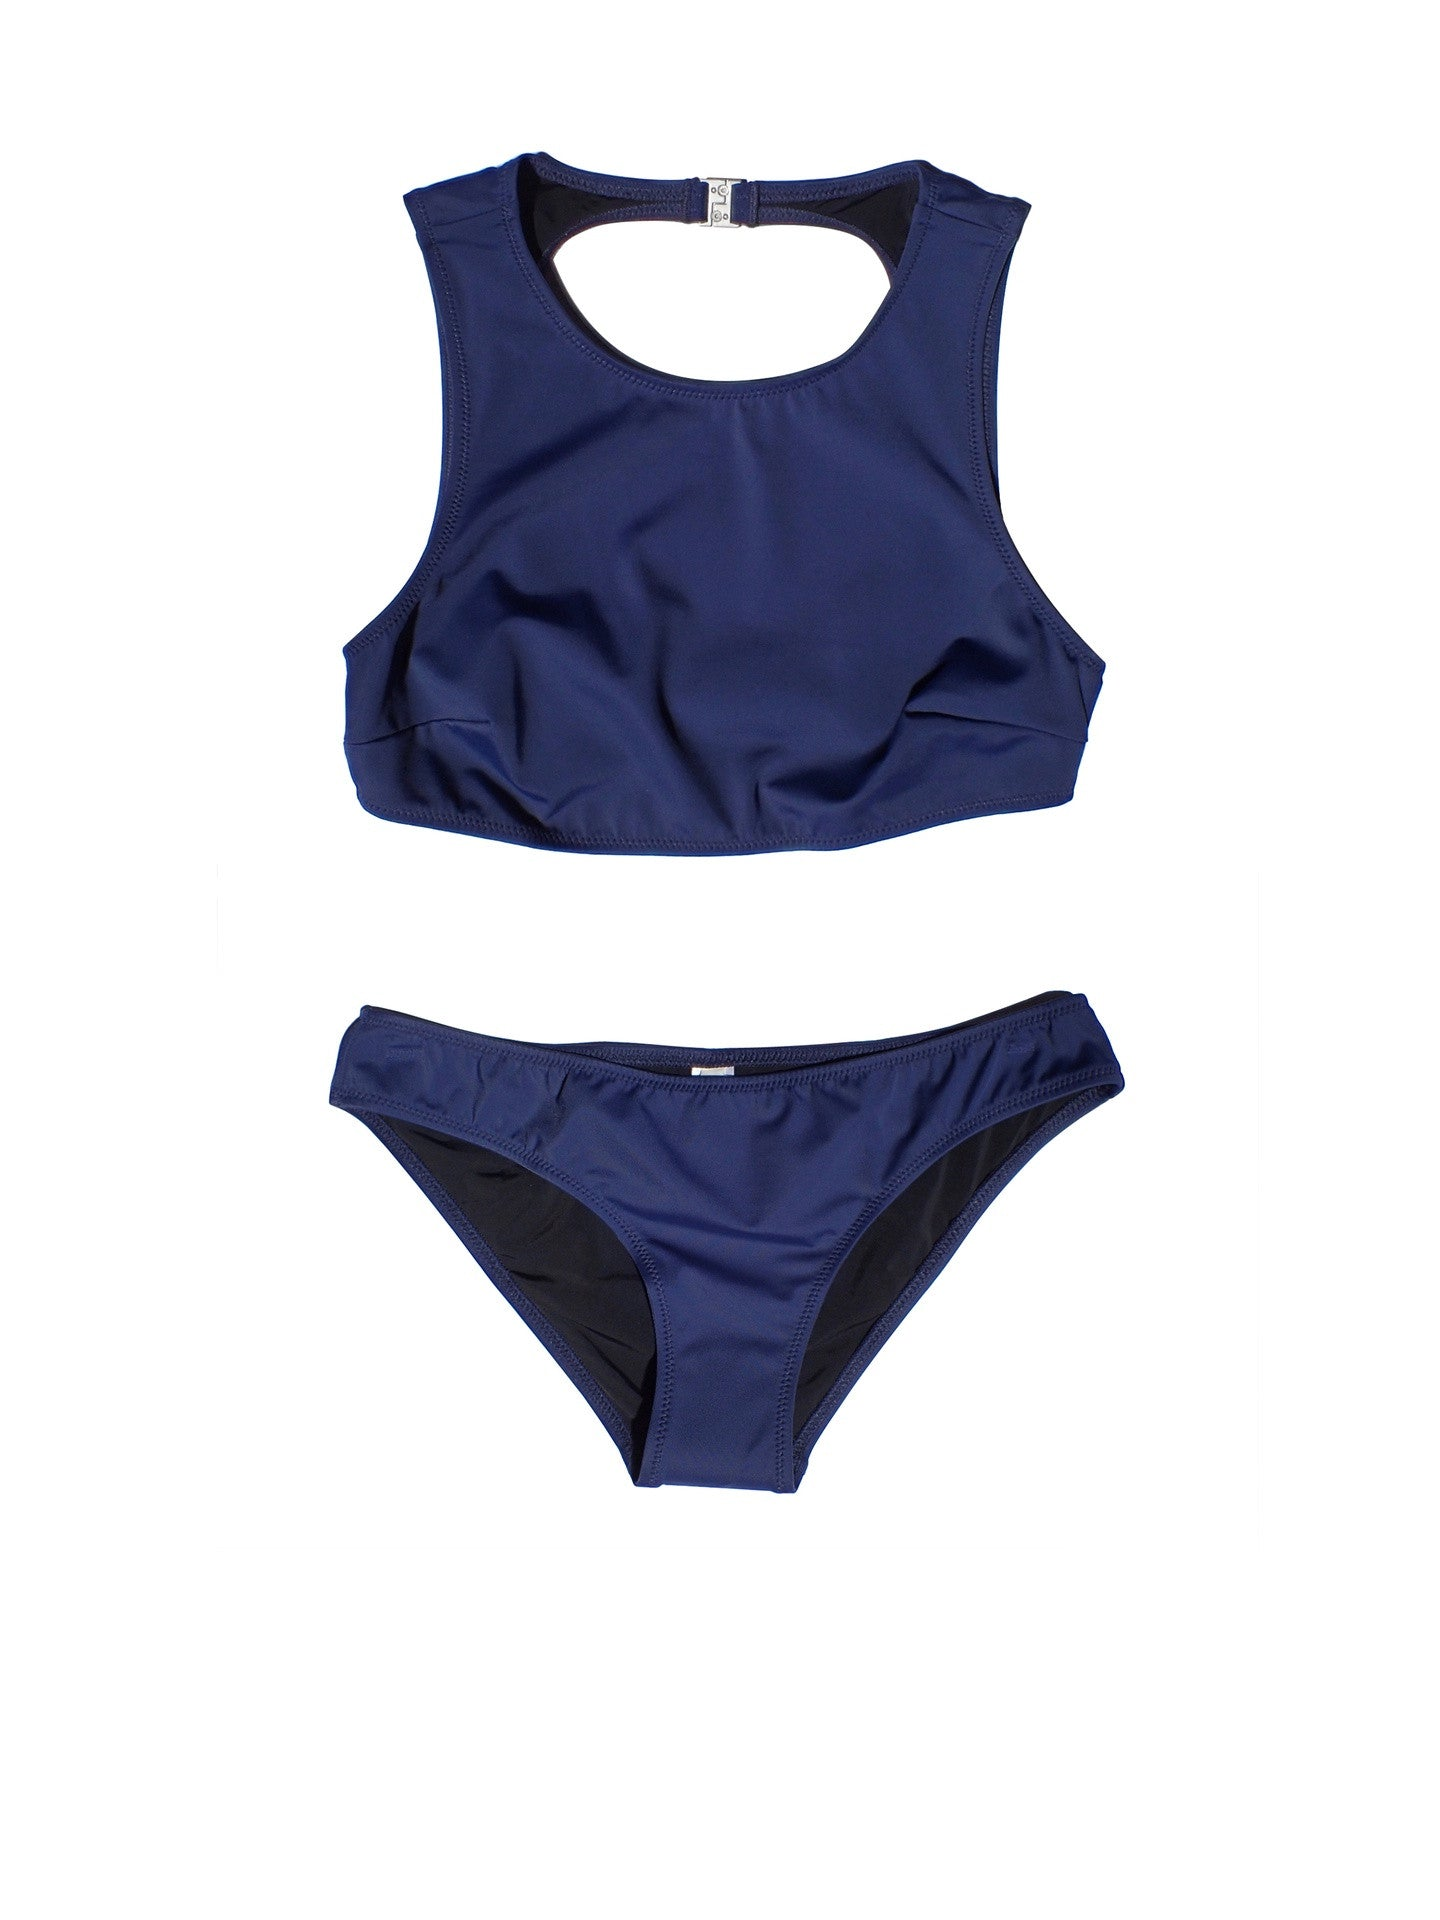 Solid & Striped - The Olivielle Bikini / Navy